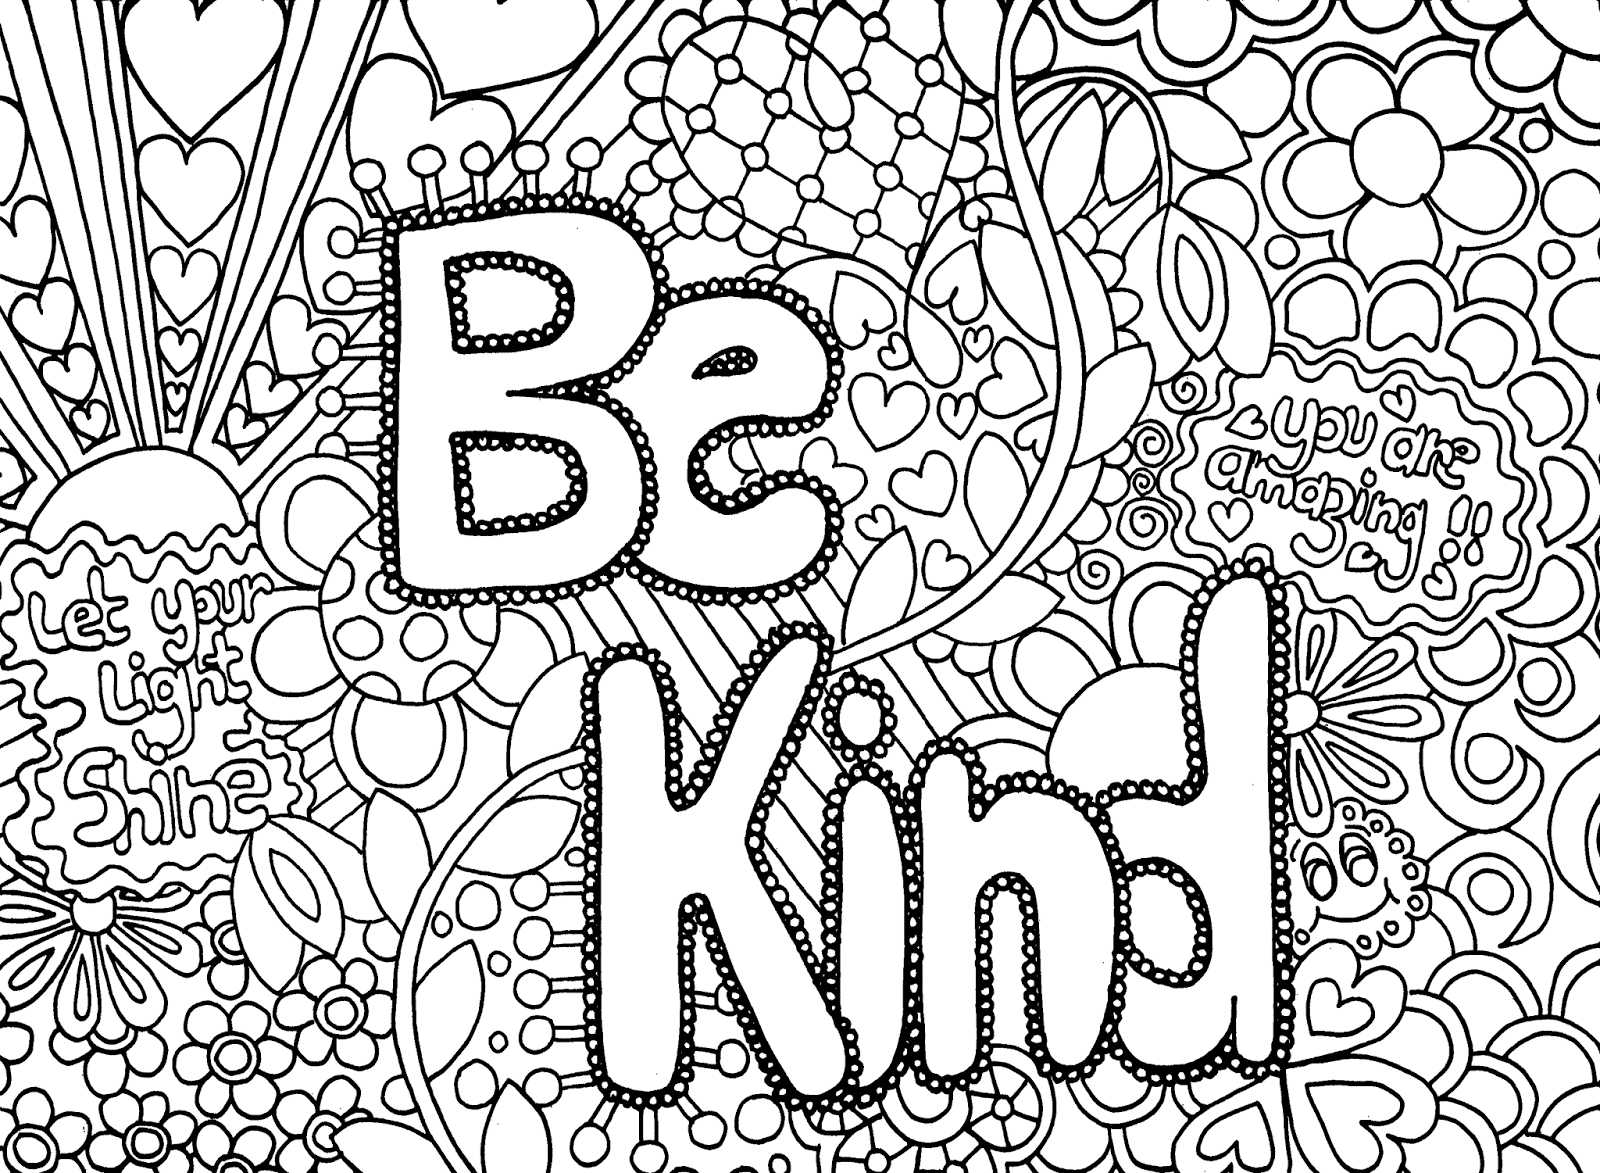 Coloring pages to print designs - For The Last Few Years Kid S Coloring Pages Printed From The Internet Have Become An Very